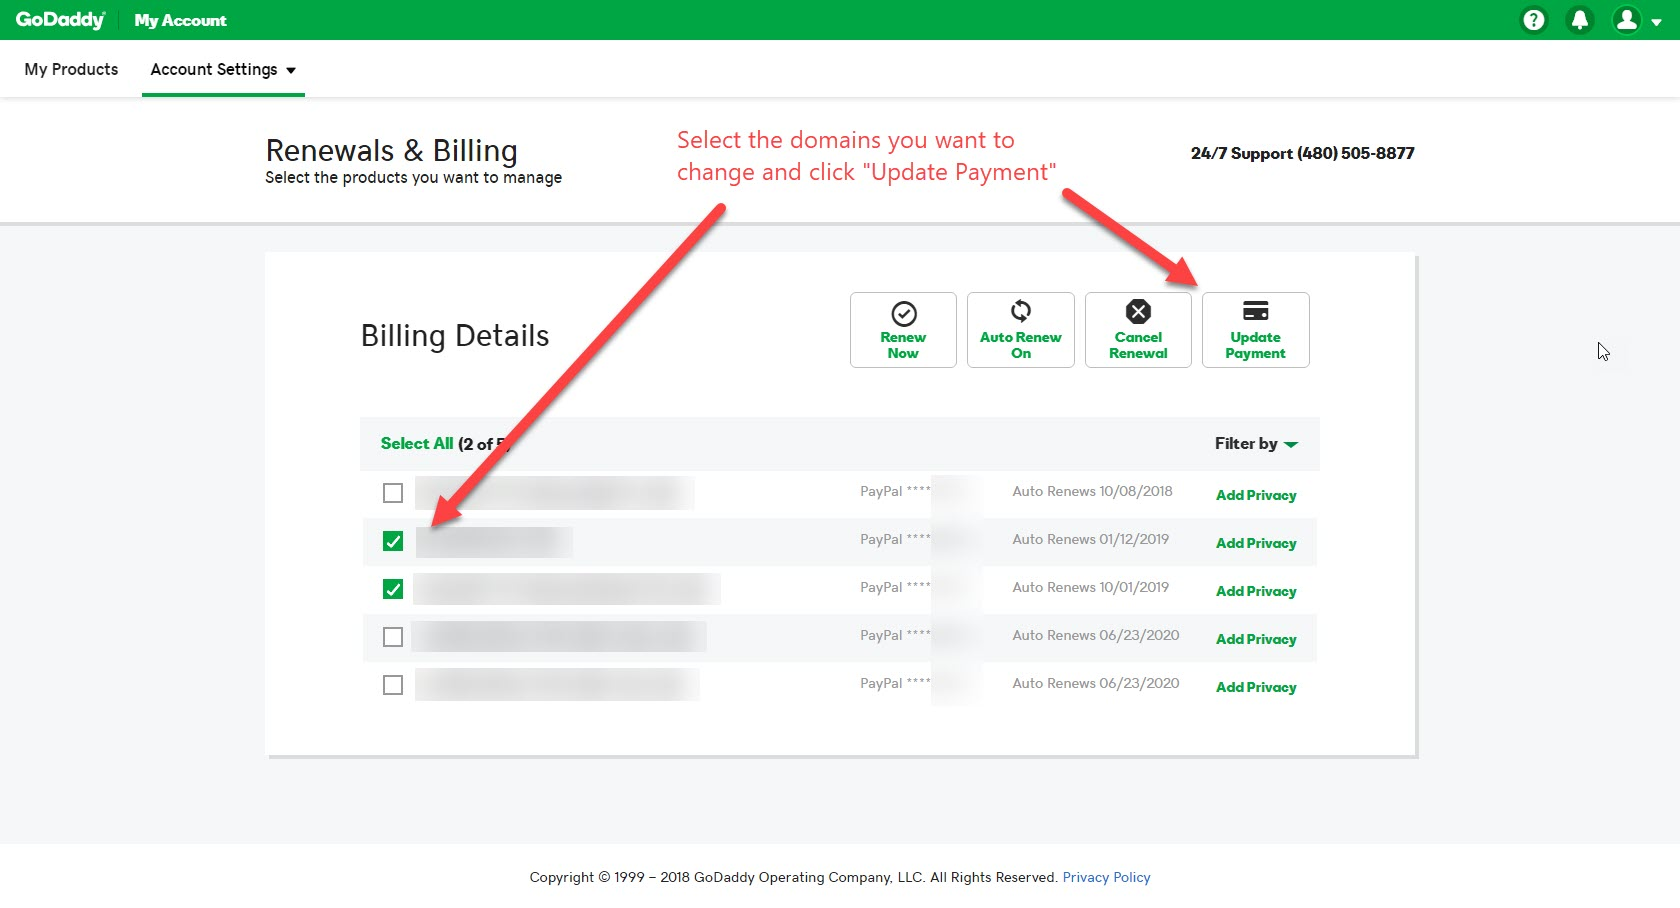 godaddy-change-payment-method-05.jpg